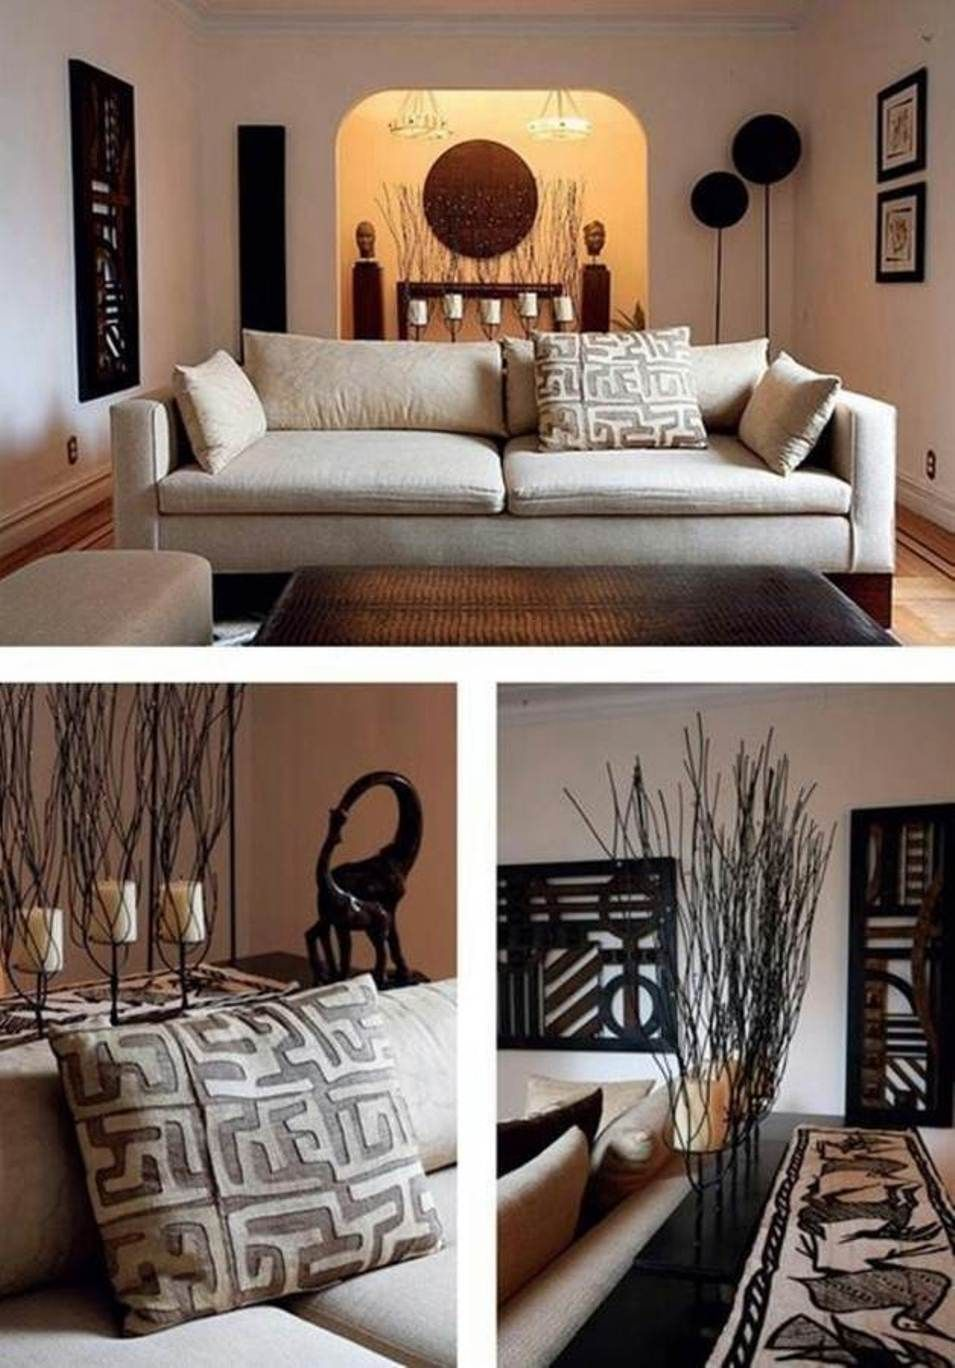 South African Decorating Ideas Jpg 955 1368 With Images